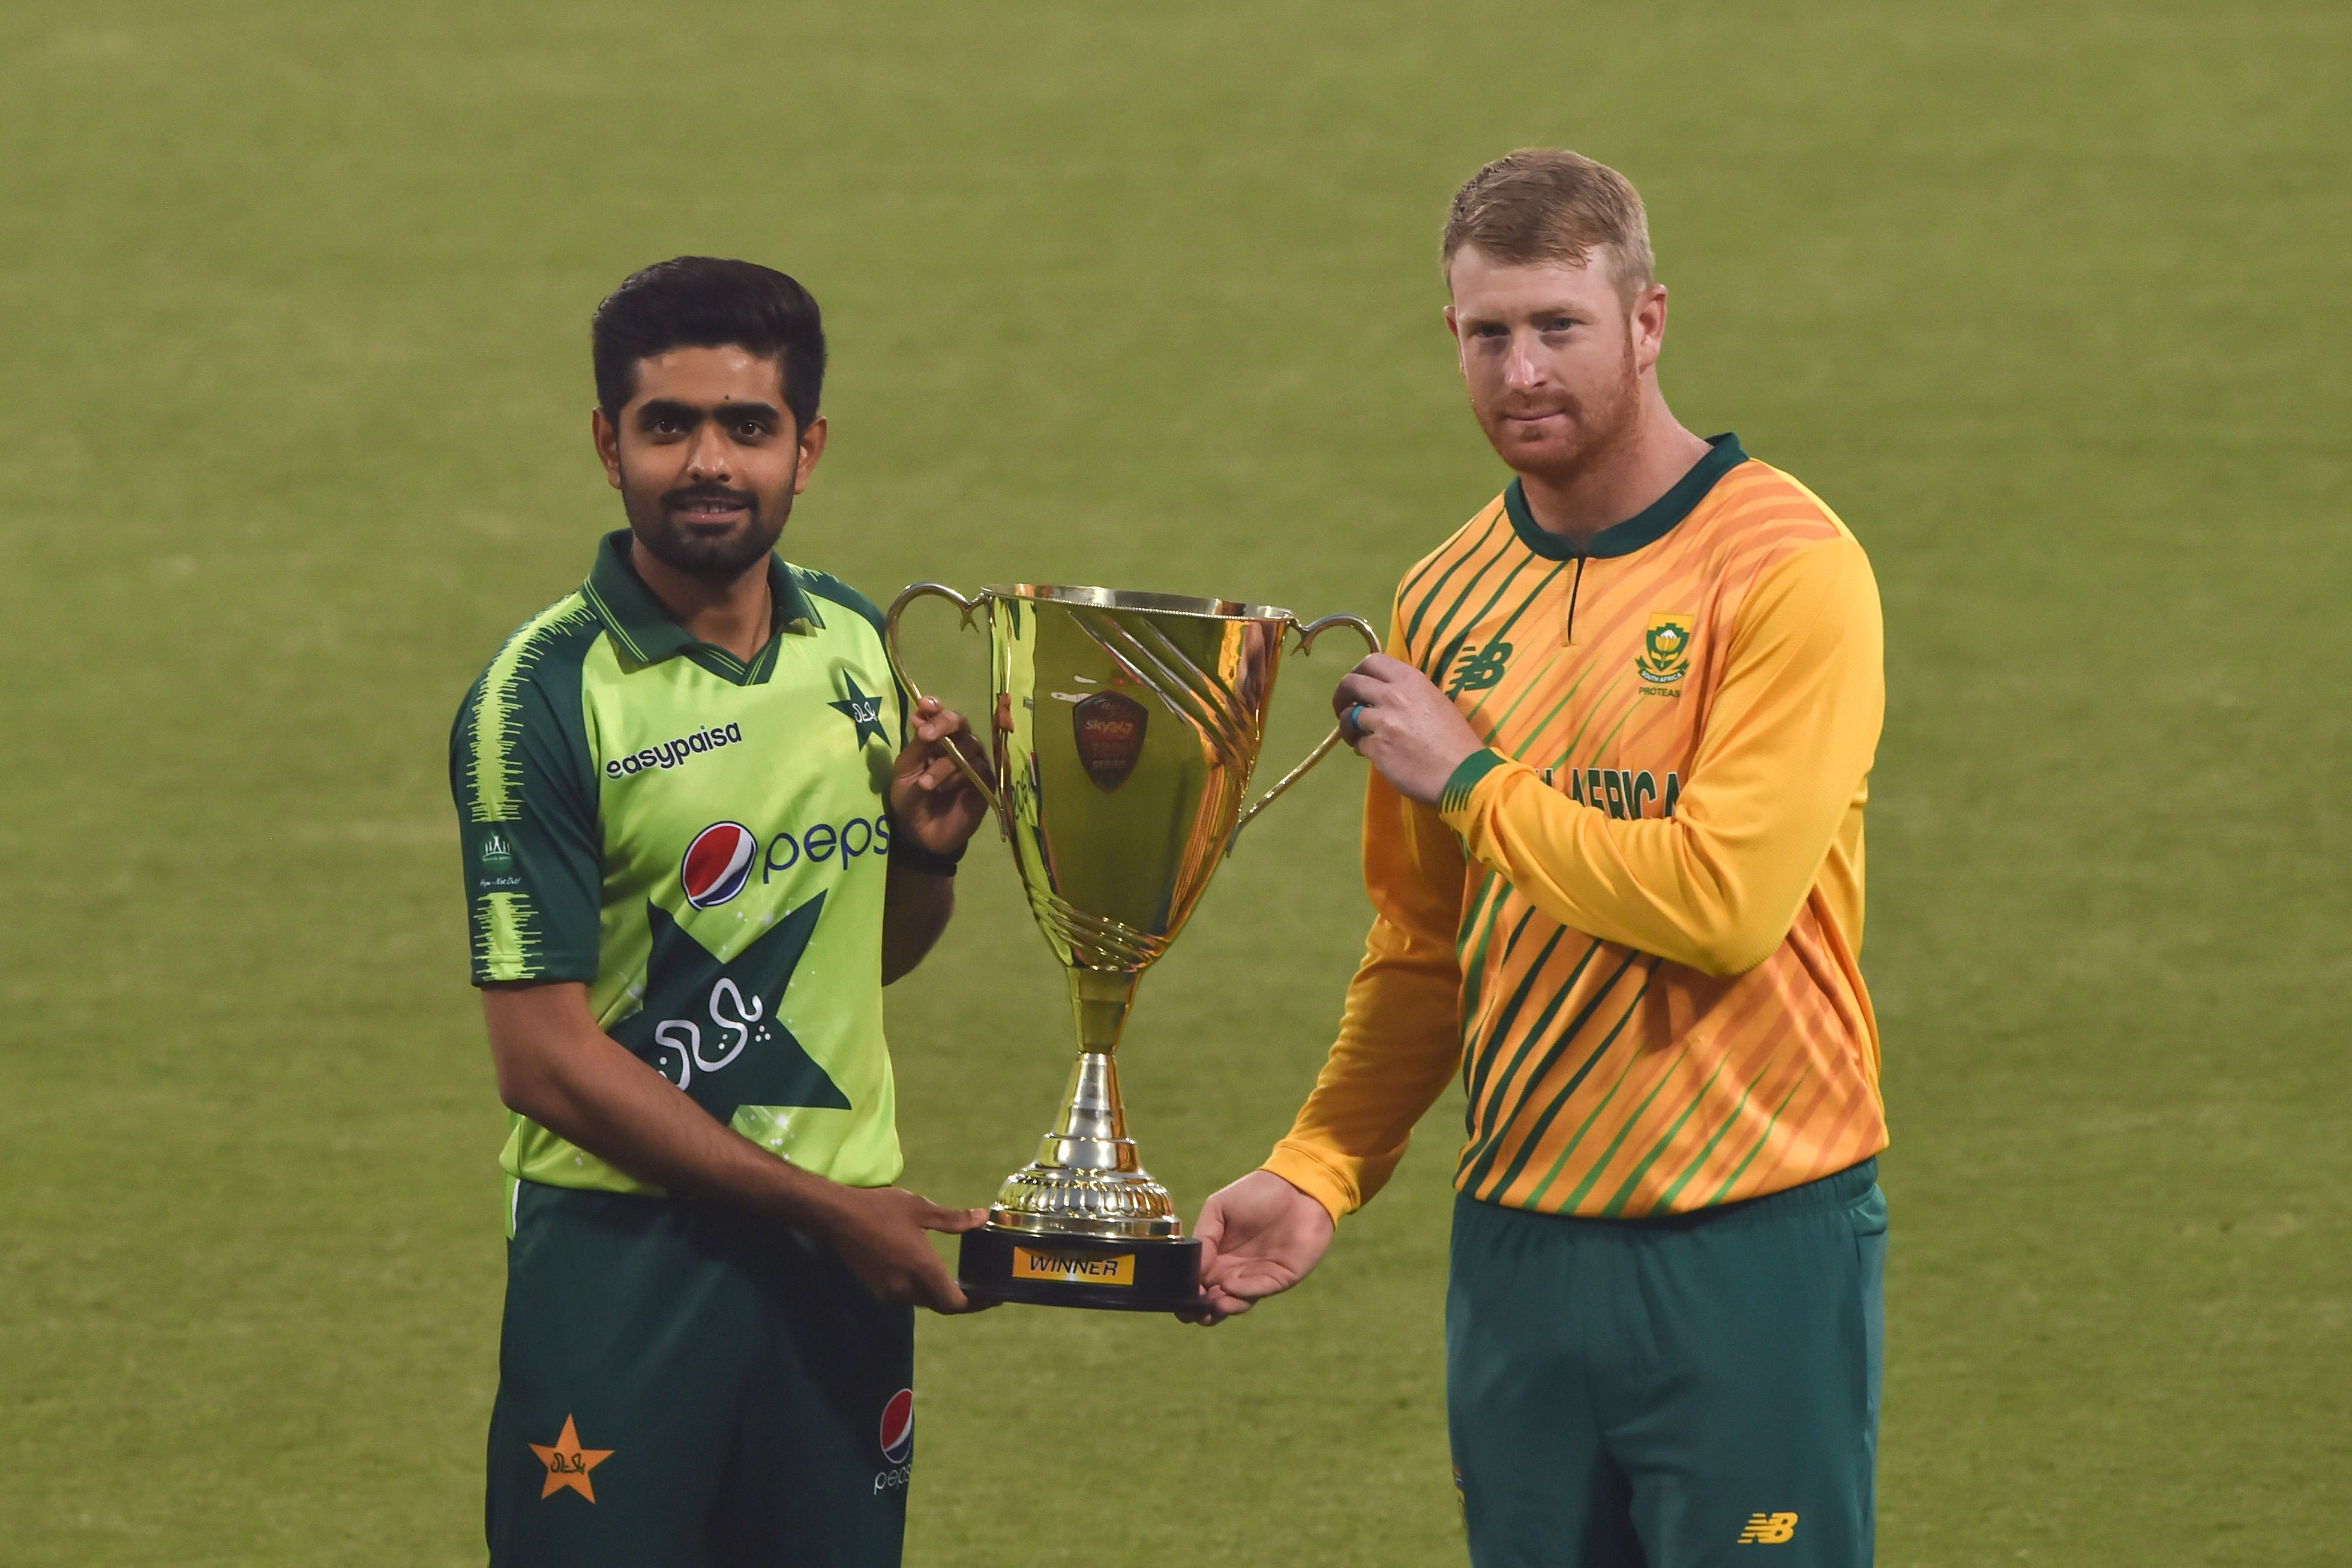 Pakistan-South Africa to play three CWC Super League ODIs, four T20Is in April - International Cricket Council